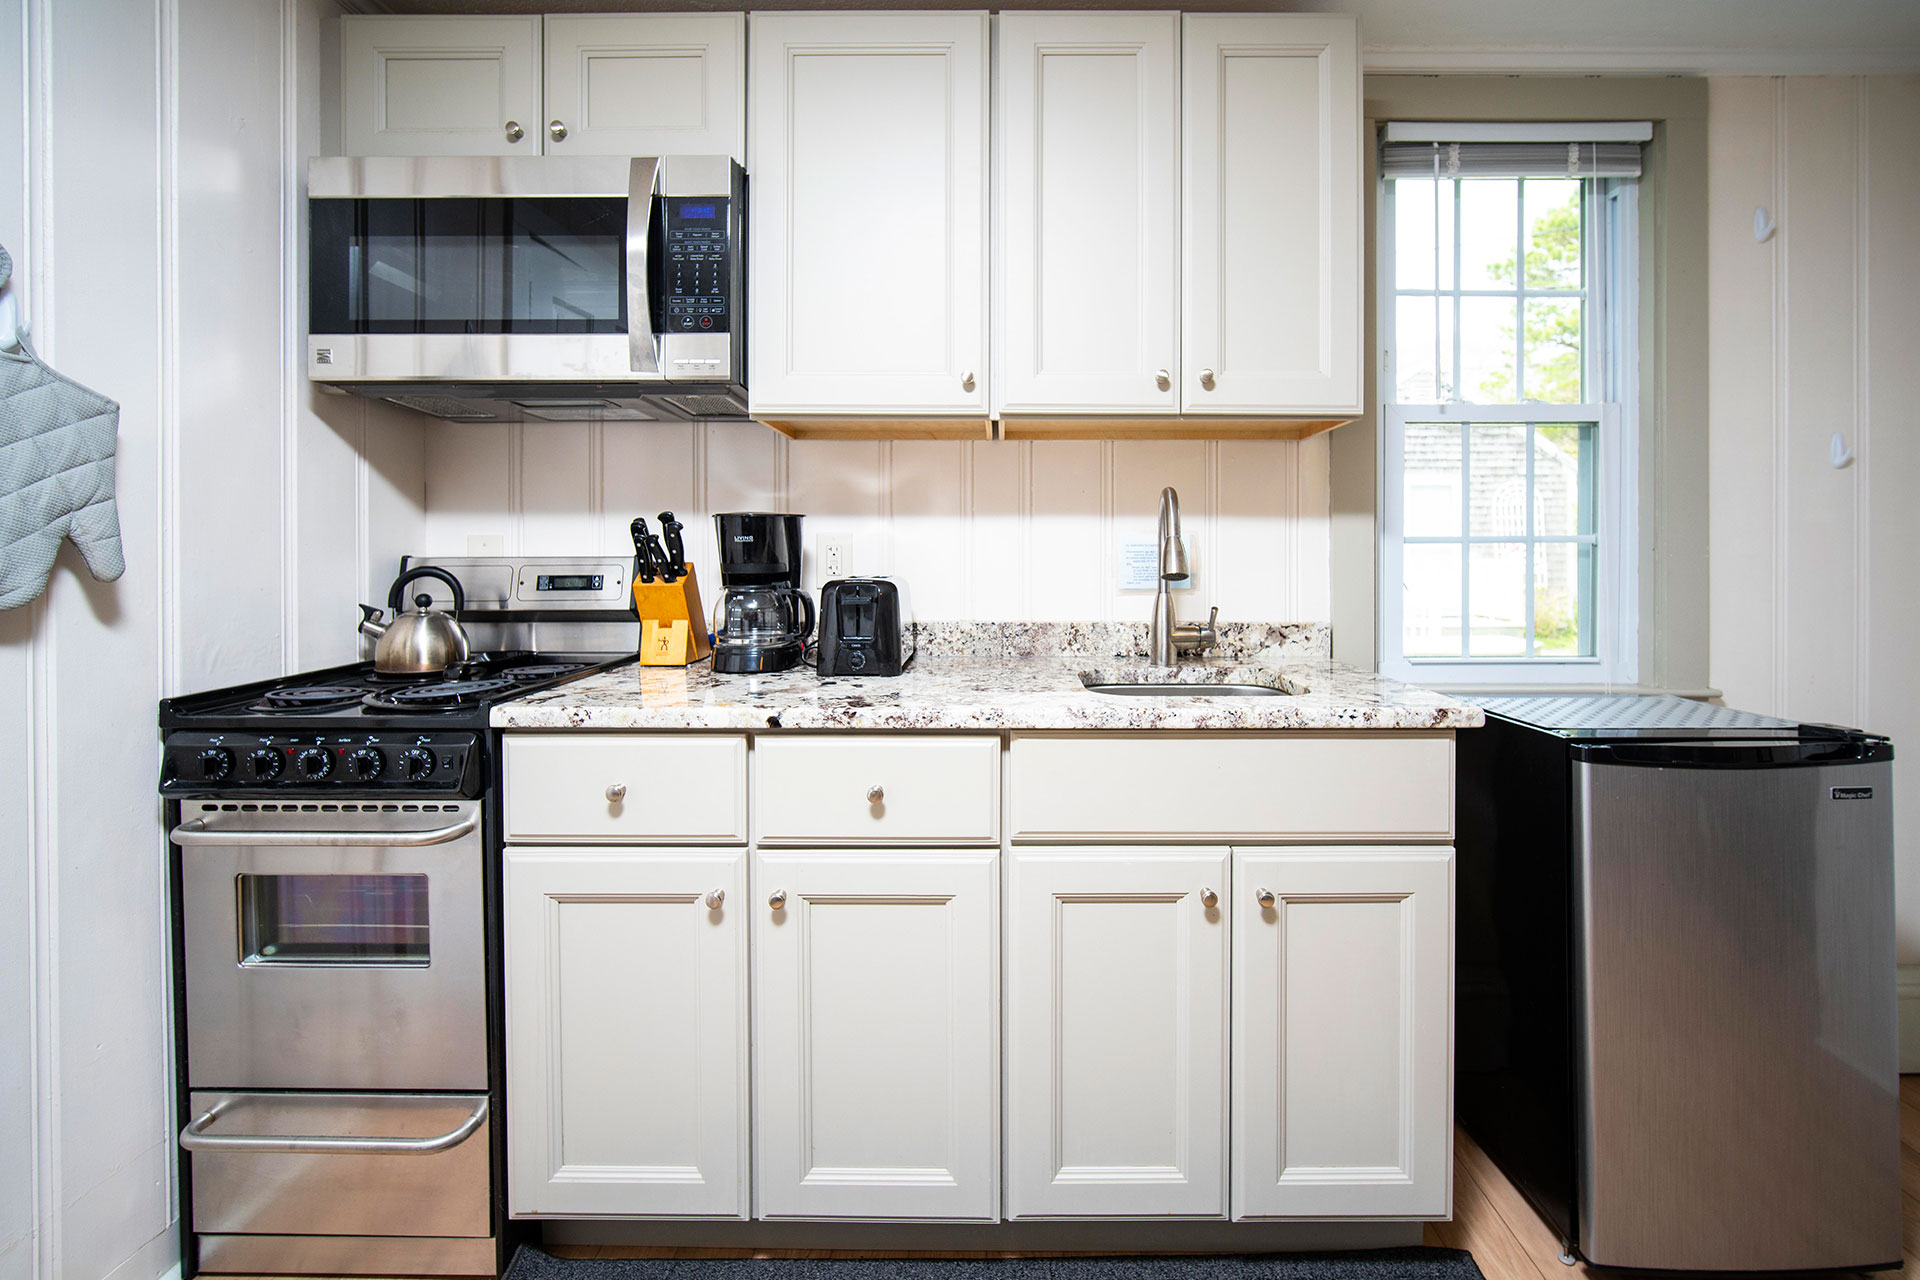 Vacation Rental Cape Cod Studio Kitchenette